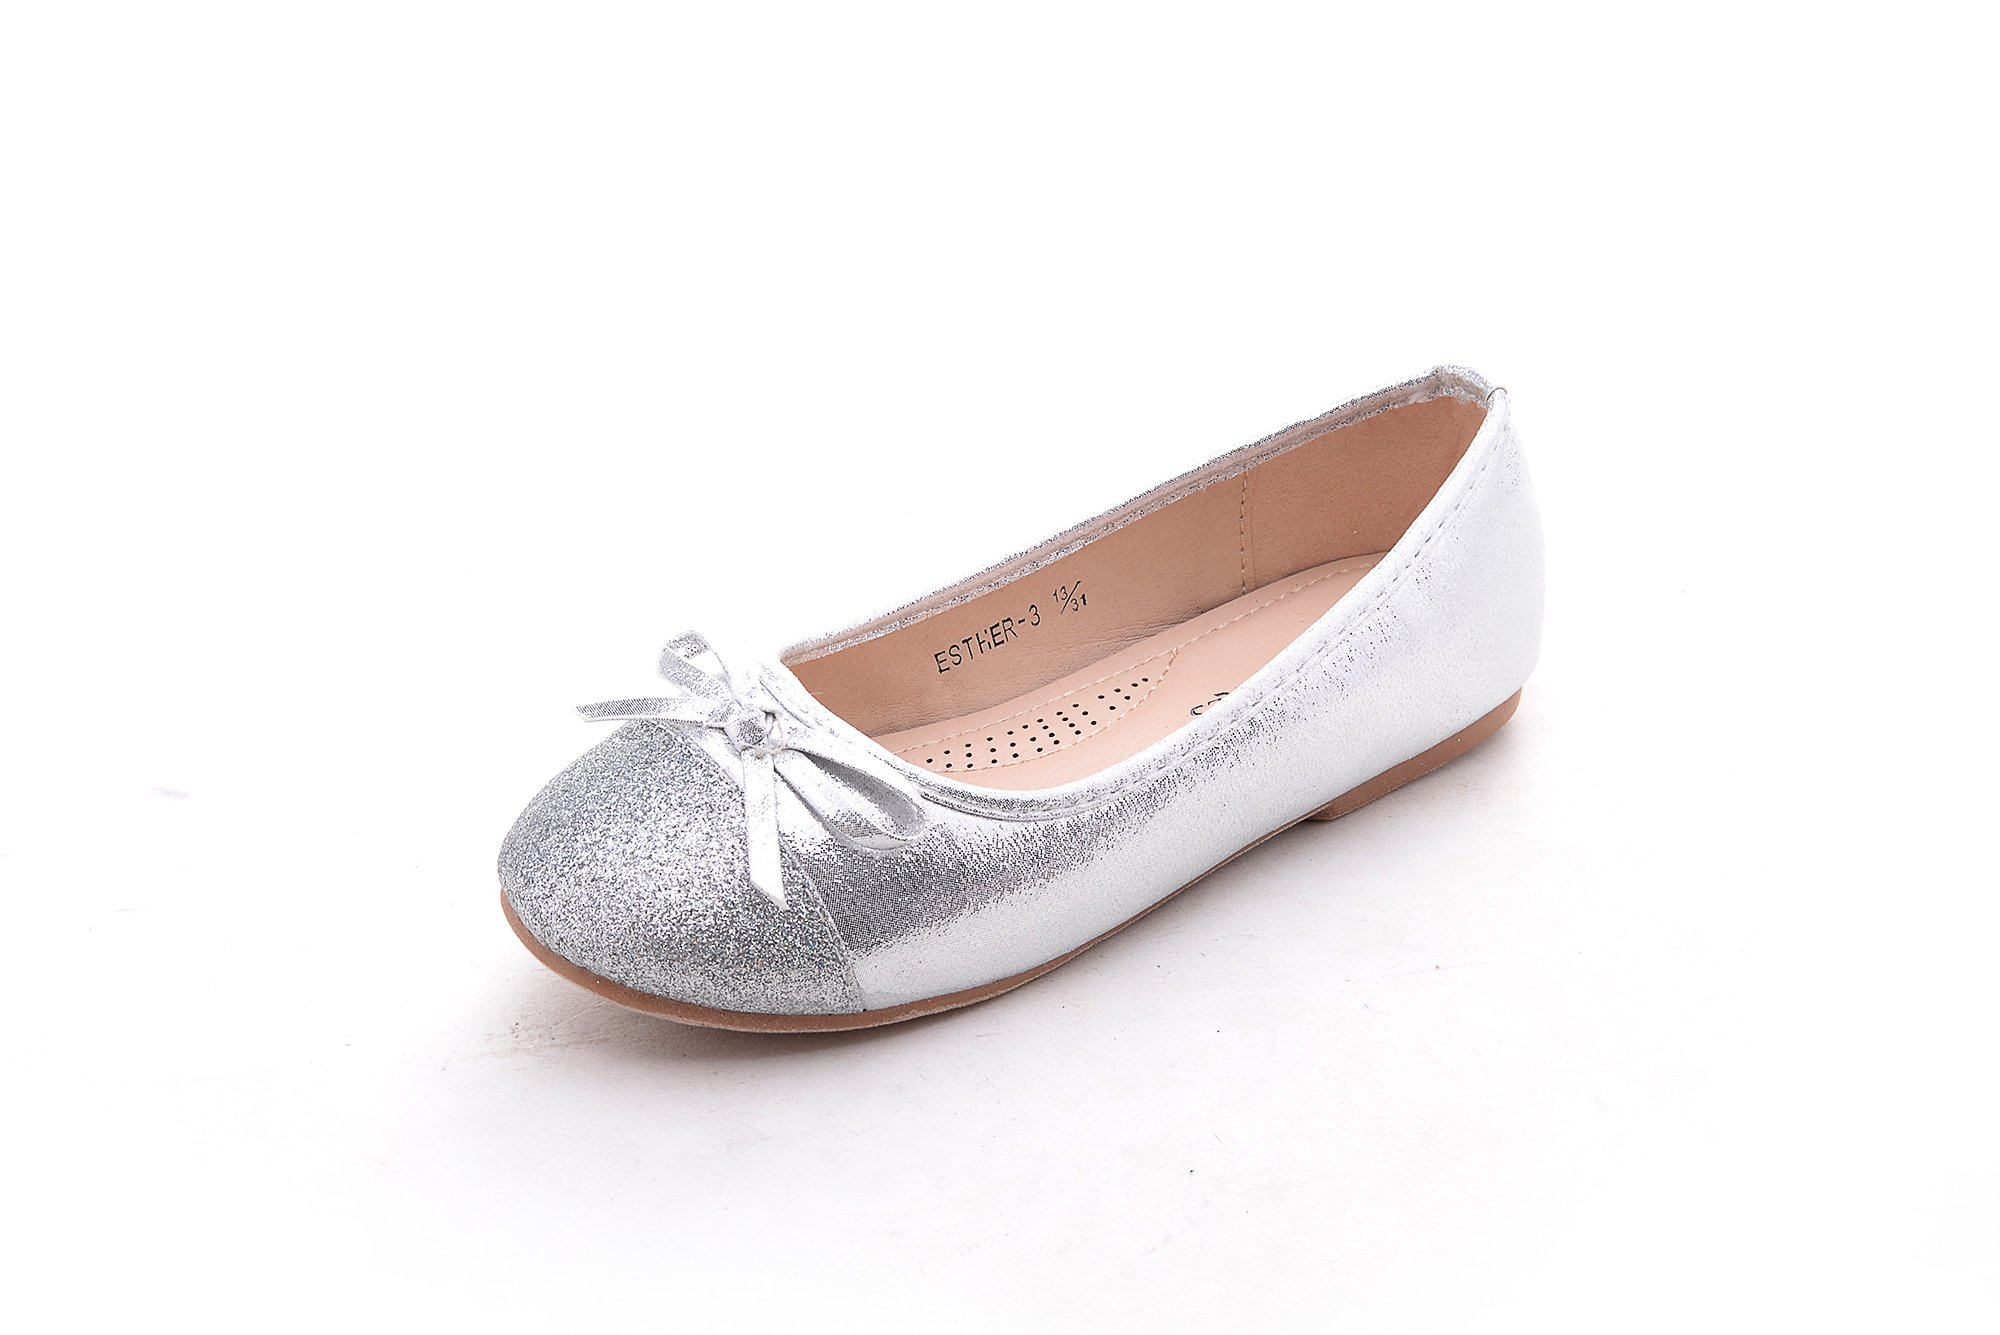 Mila Girls Casual Slip On Glitter Ballerina Dress Flat Shoes Party Wedding (Esther-3) Sliver 1